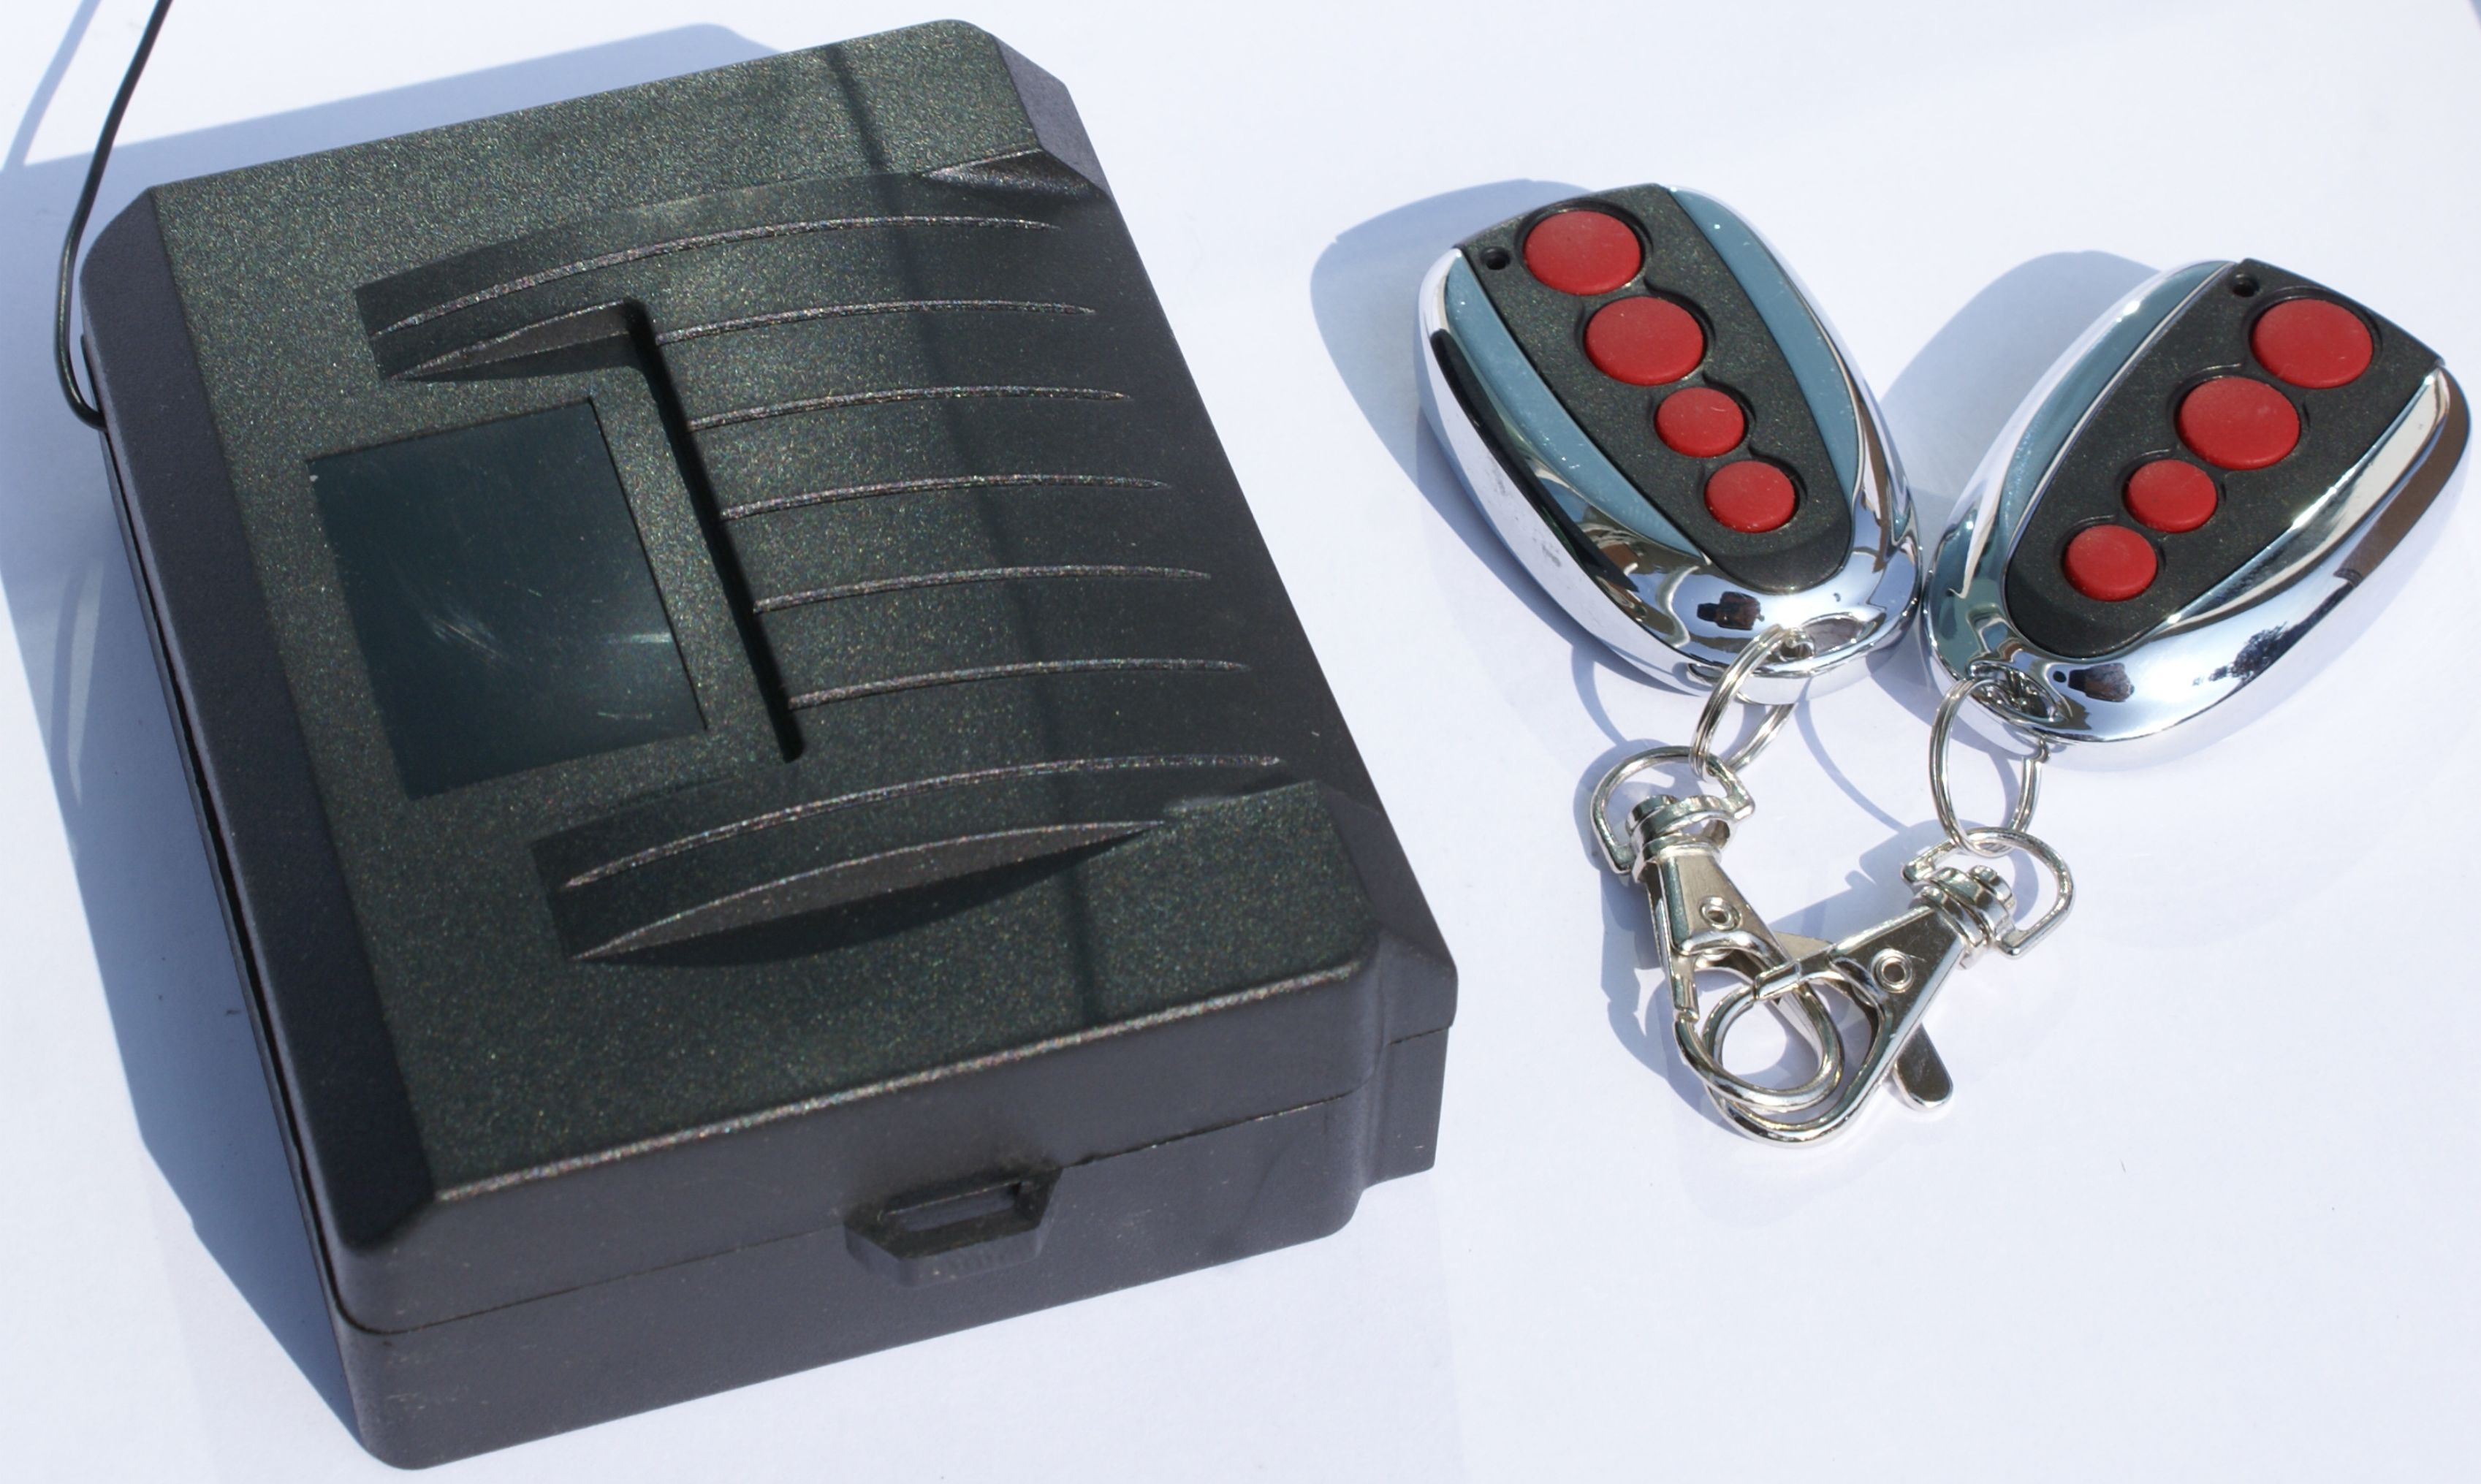 Remote Reciever Board & Fobs